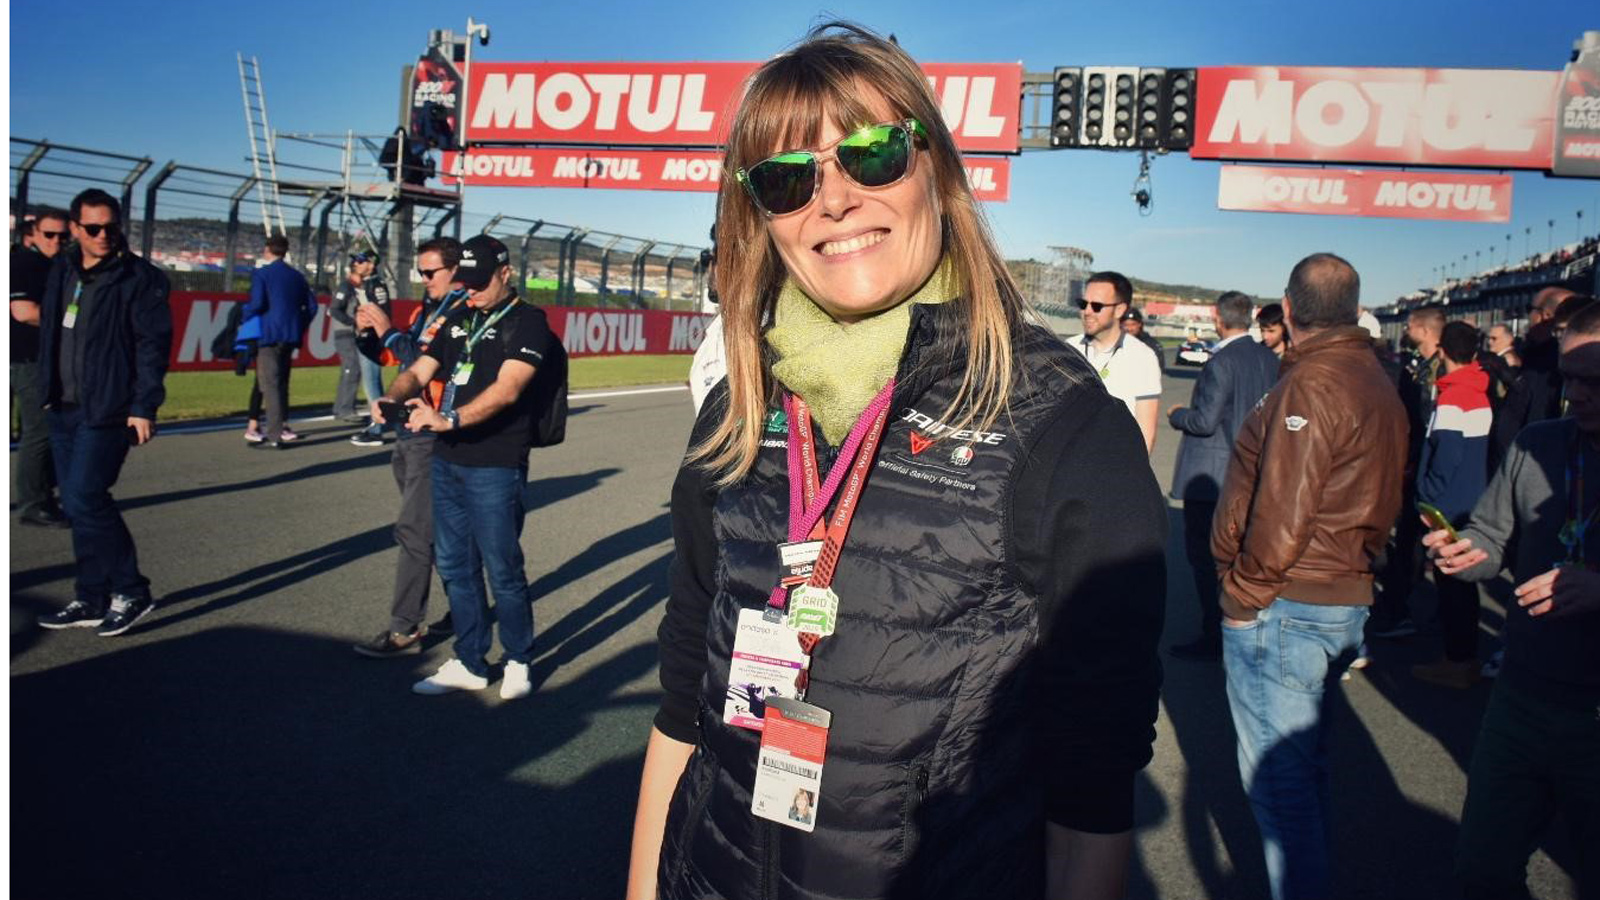 Time is now for sustainable motor racing, and for women, says 'female Elon Musk'